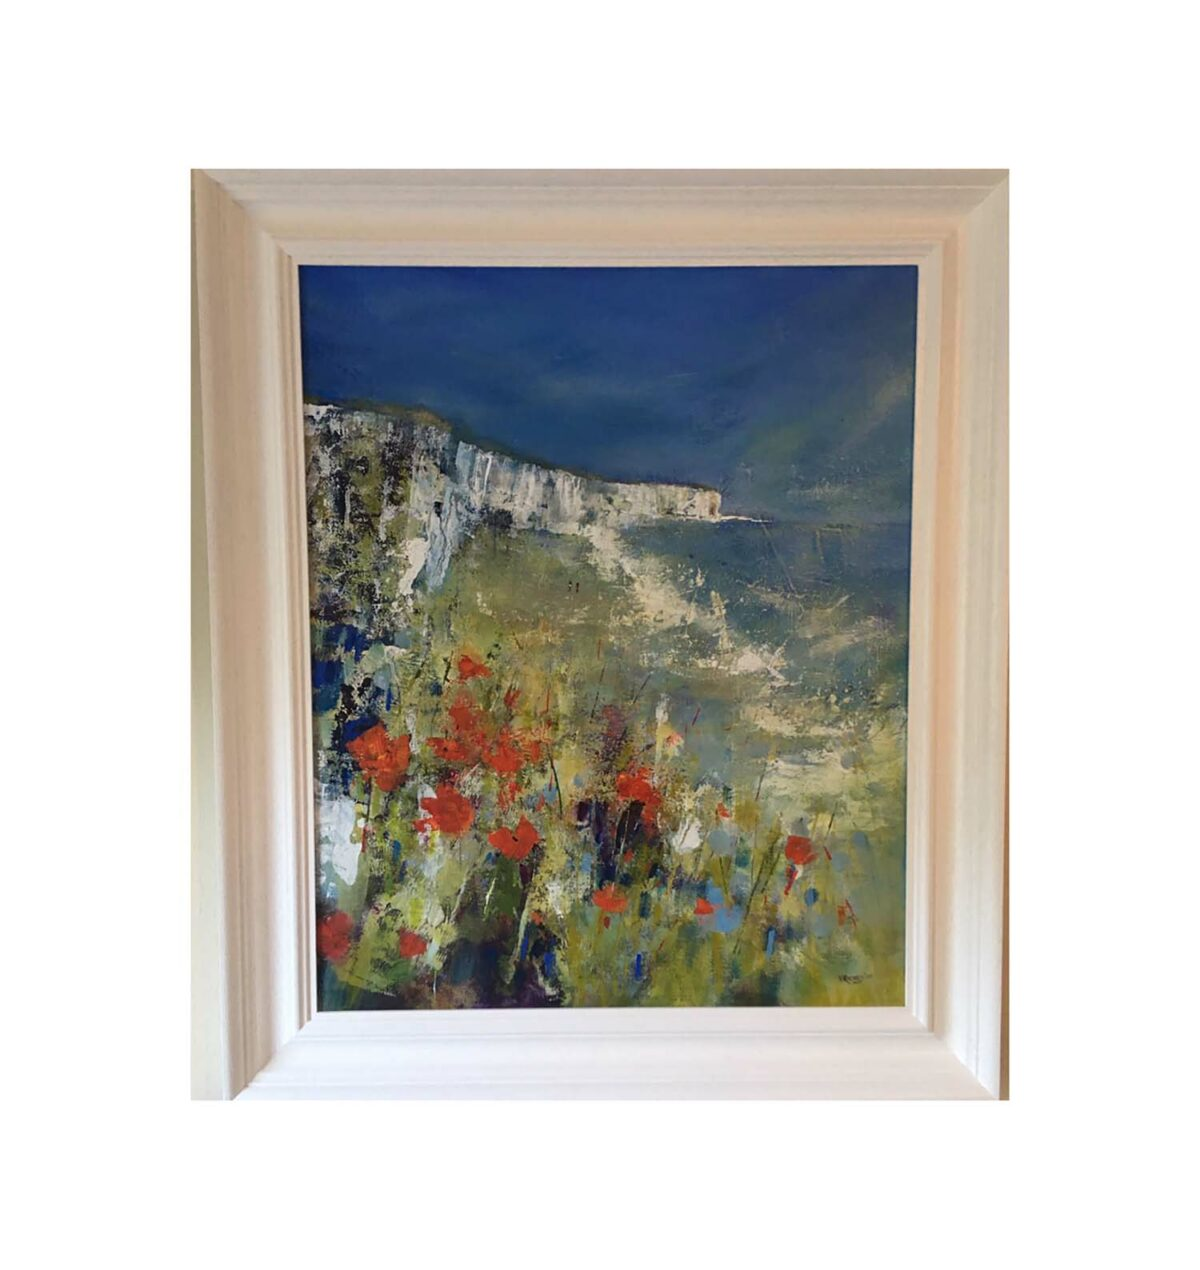 Artwork details: 'Seaside Poppies' acrylic on board, £595